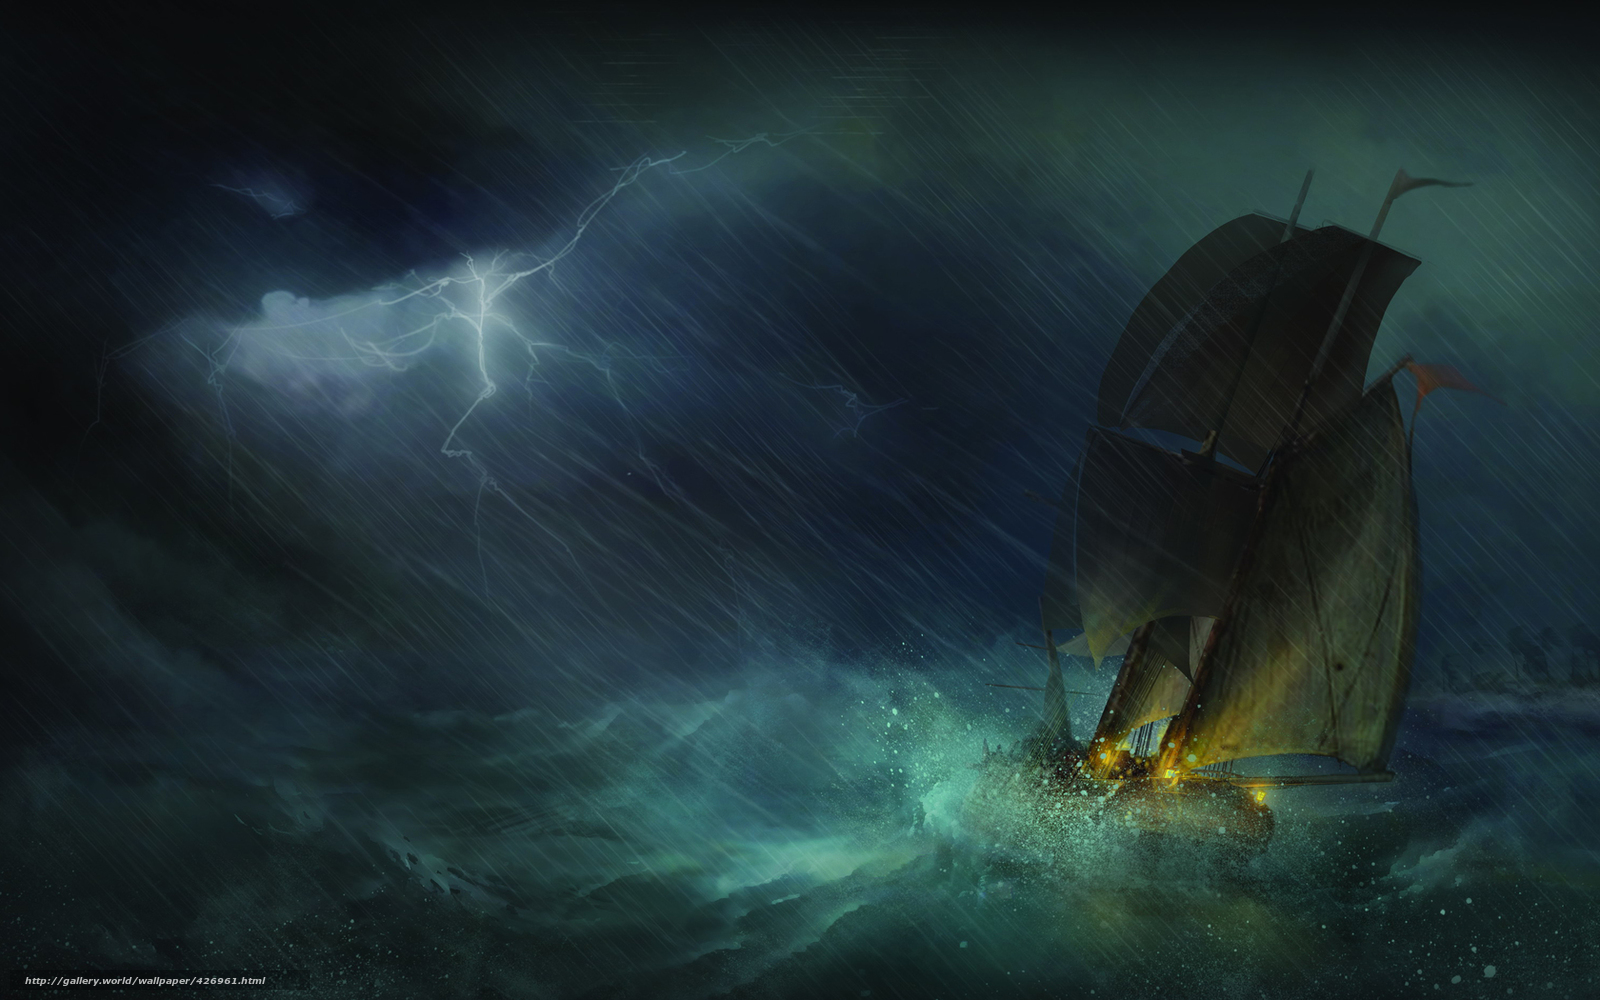 miracle in the storm Jesus performed a miracle in which he rebuked and calmed a storm that scared his disciples while in a boat crossing a lake or sea - perhaps the sea of galilee - showing that jesus had authority even over nature itself.